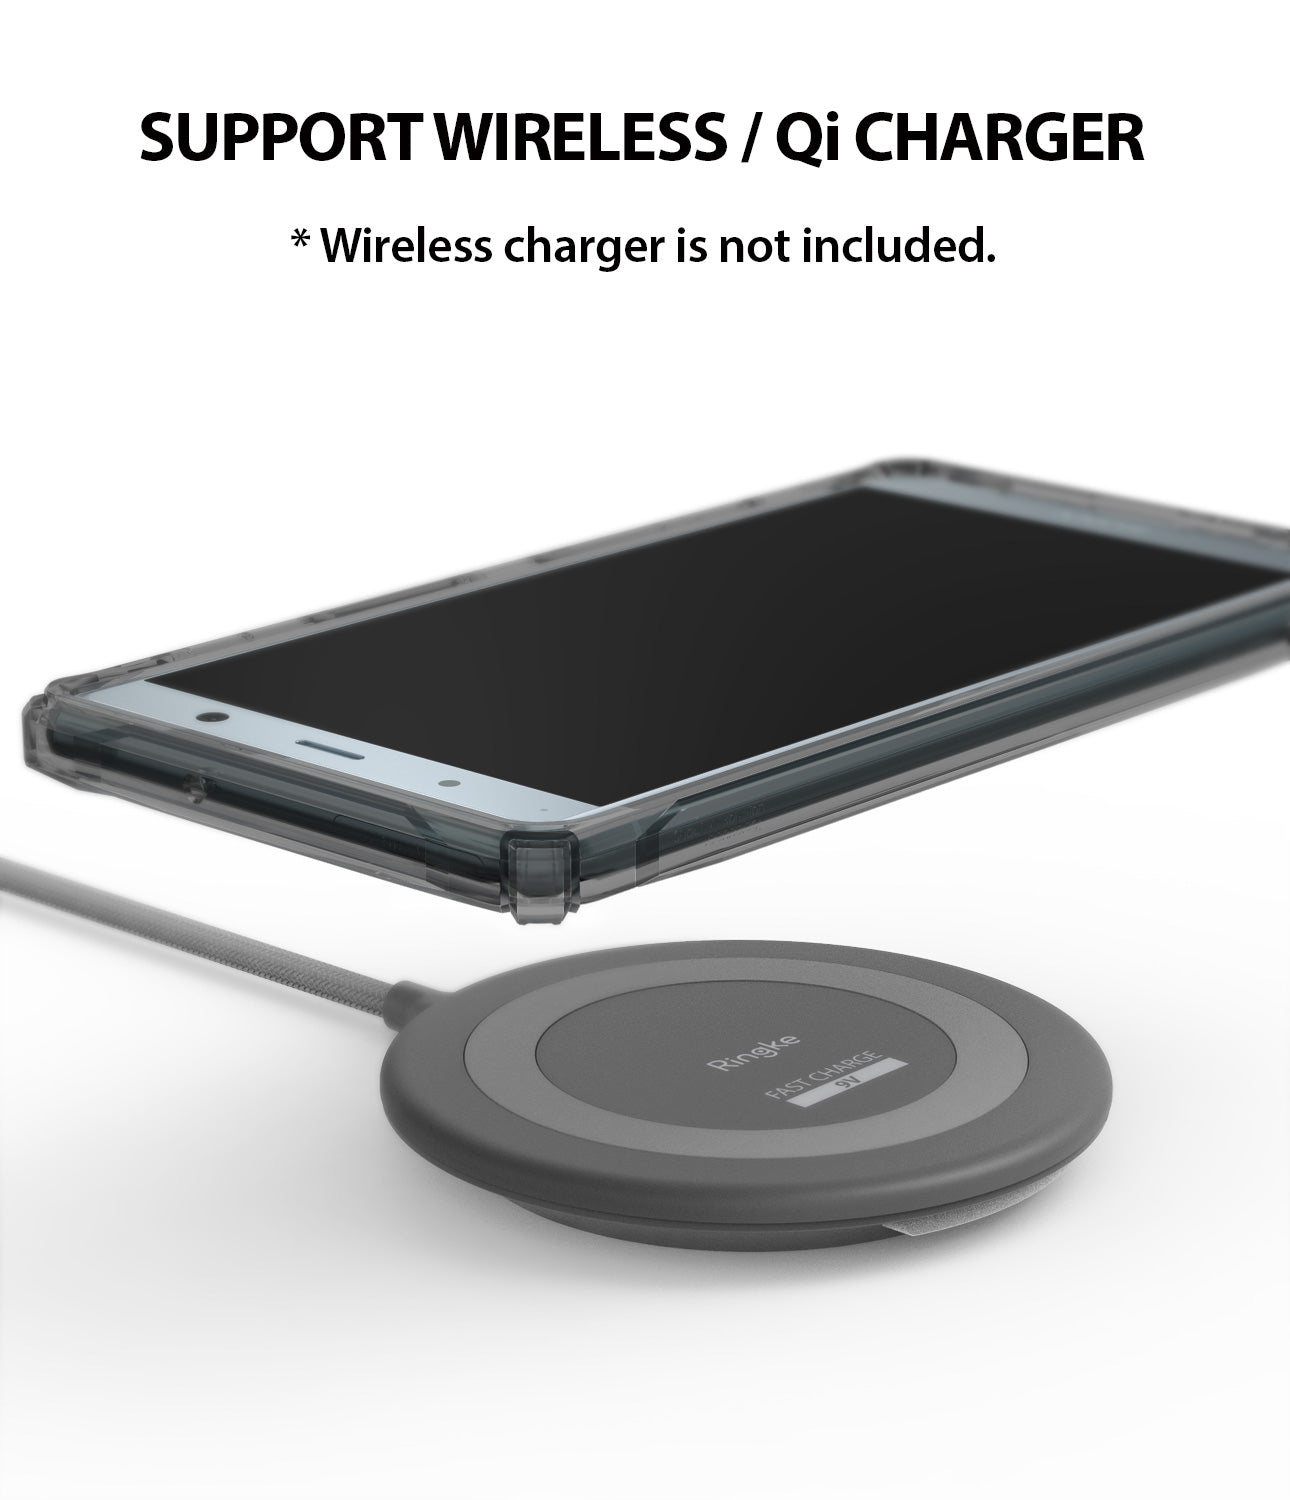 support wireless / qi charge